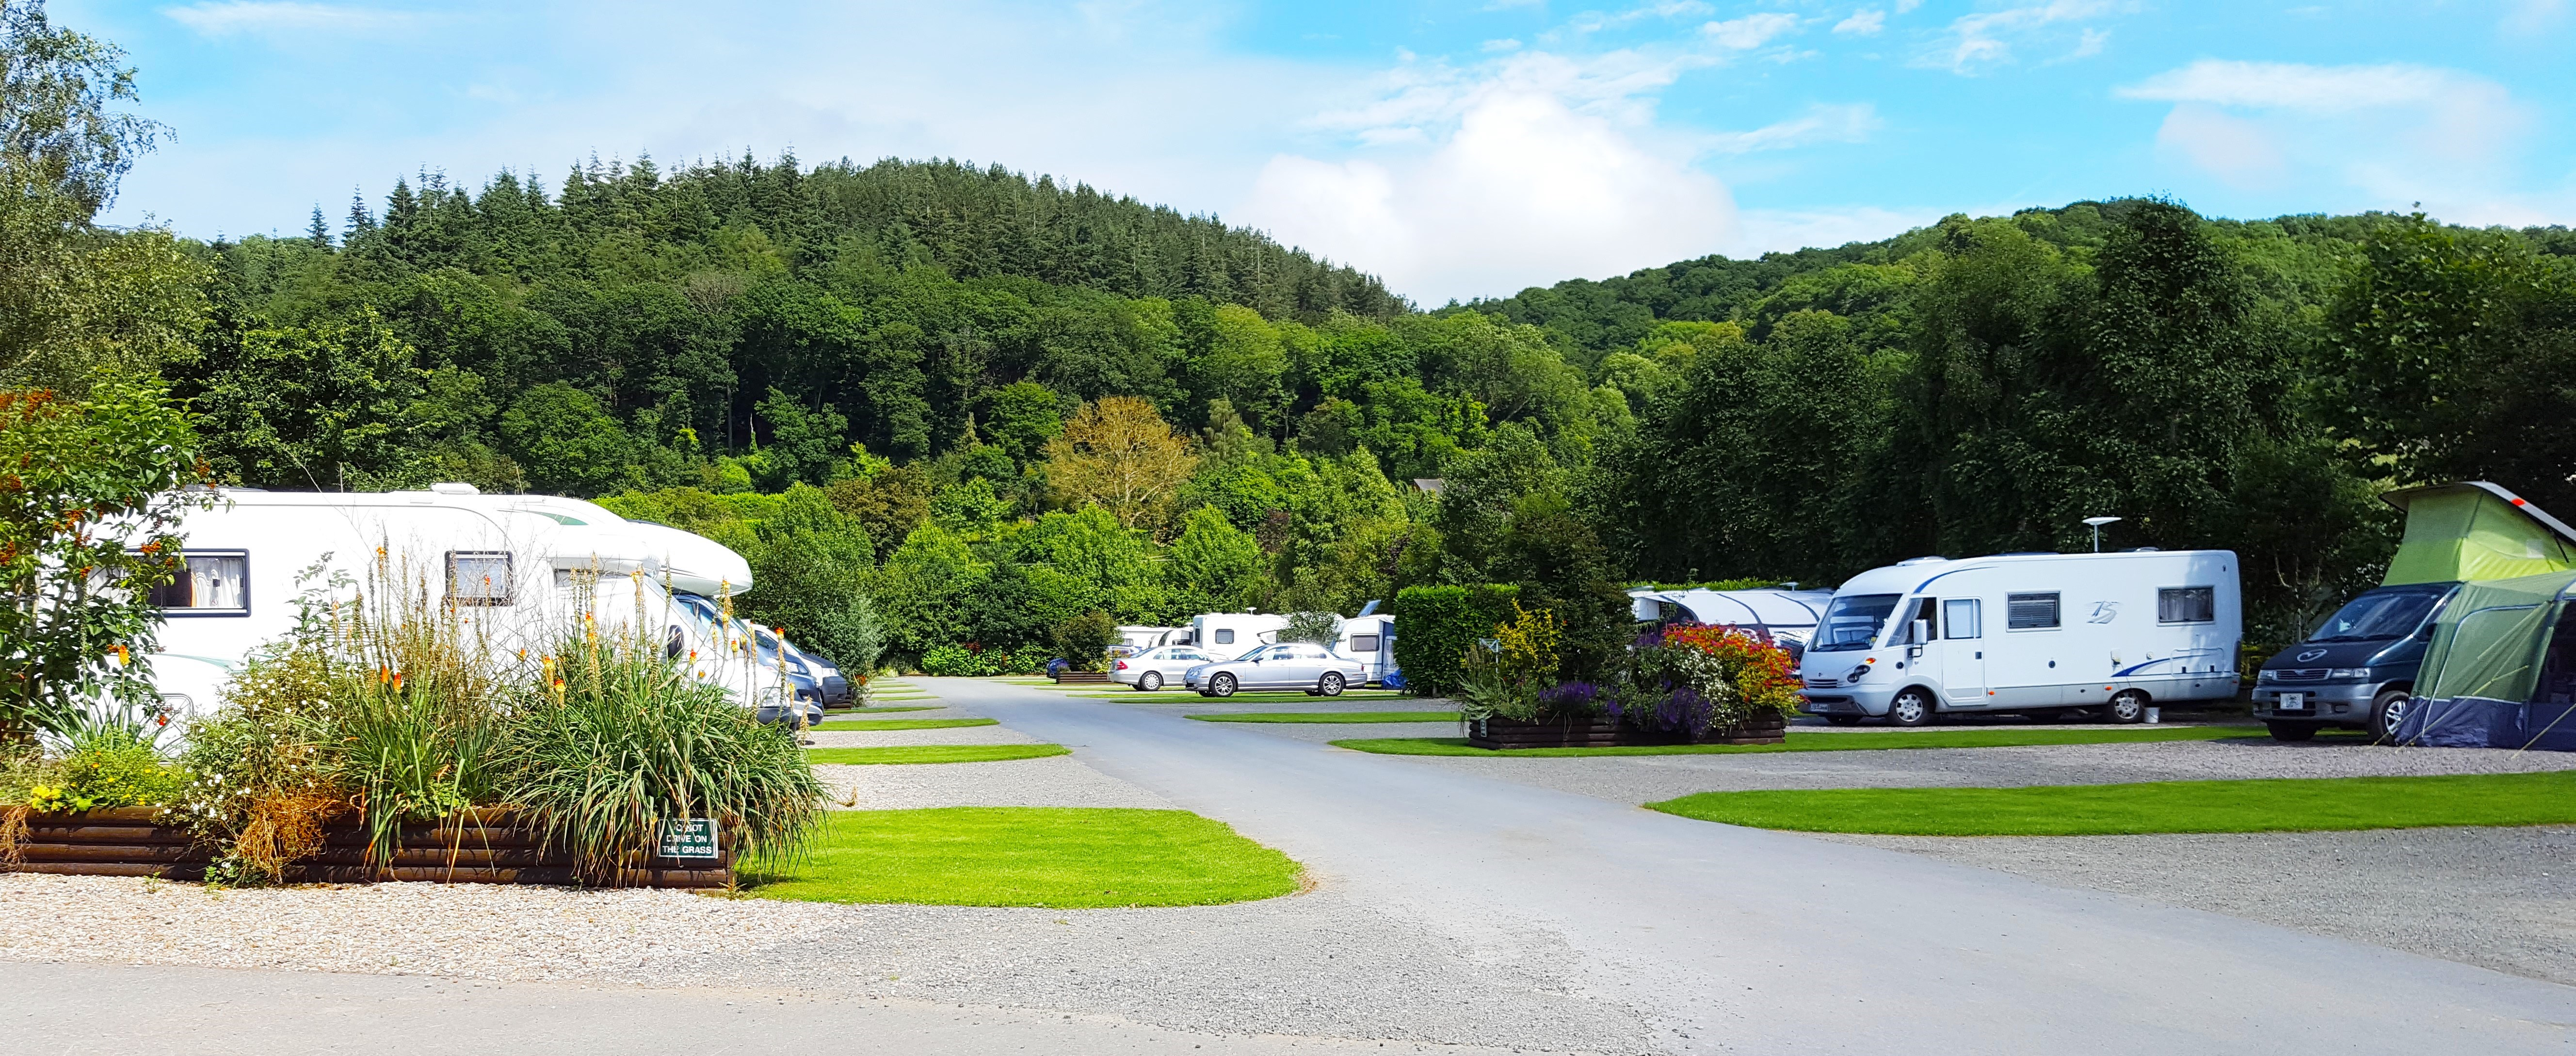 Popular Wriggles Brook Caravans Sleep Up To Four, With Hire Starting At &16390 For The Weekend For More Information, See Wwwwrigglesbrookcouk Badger Gypsy Caravan, Upper Wye Valley, Welsh Lake District The Pretty Retreat Is Located